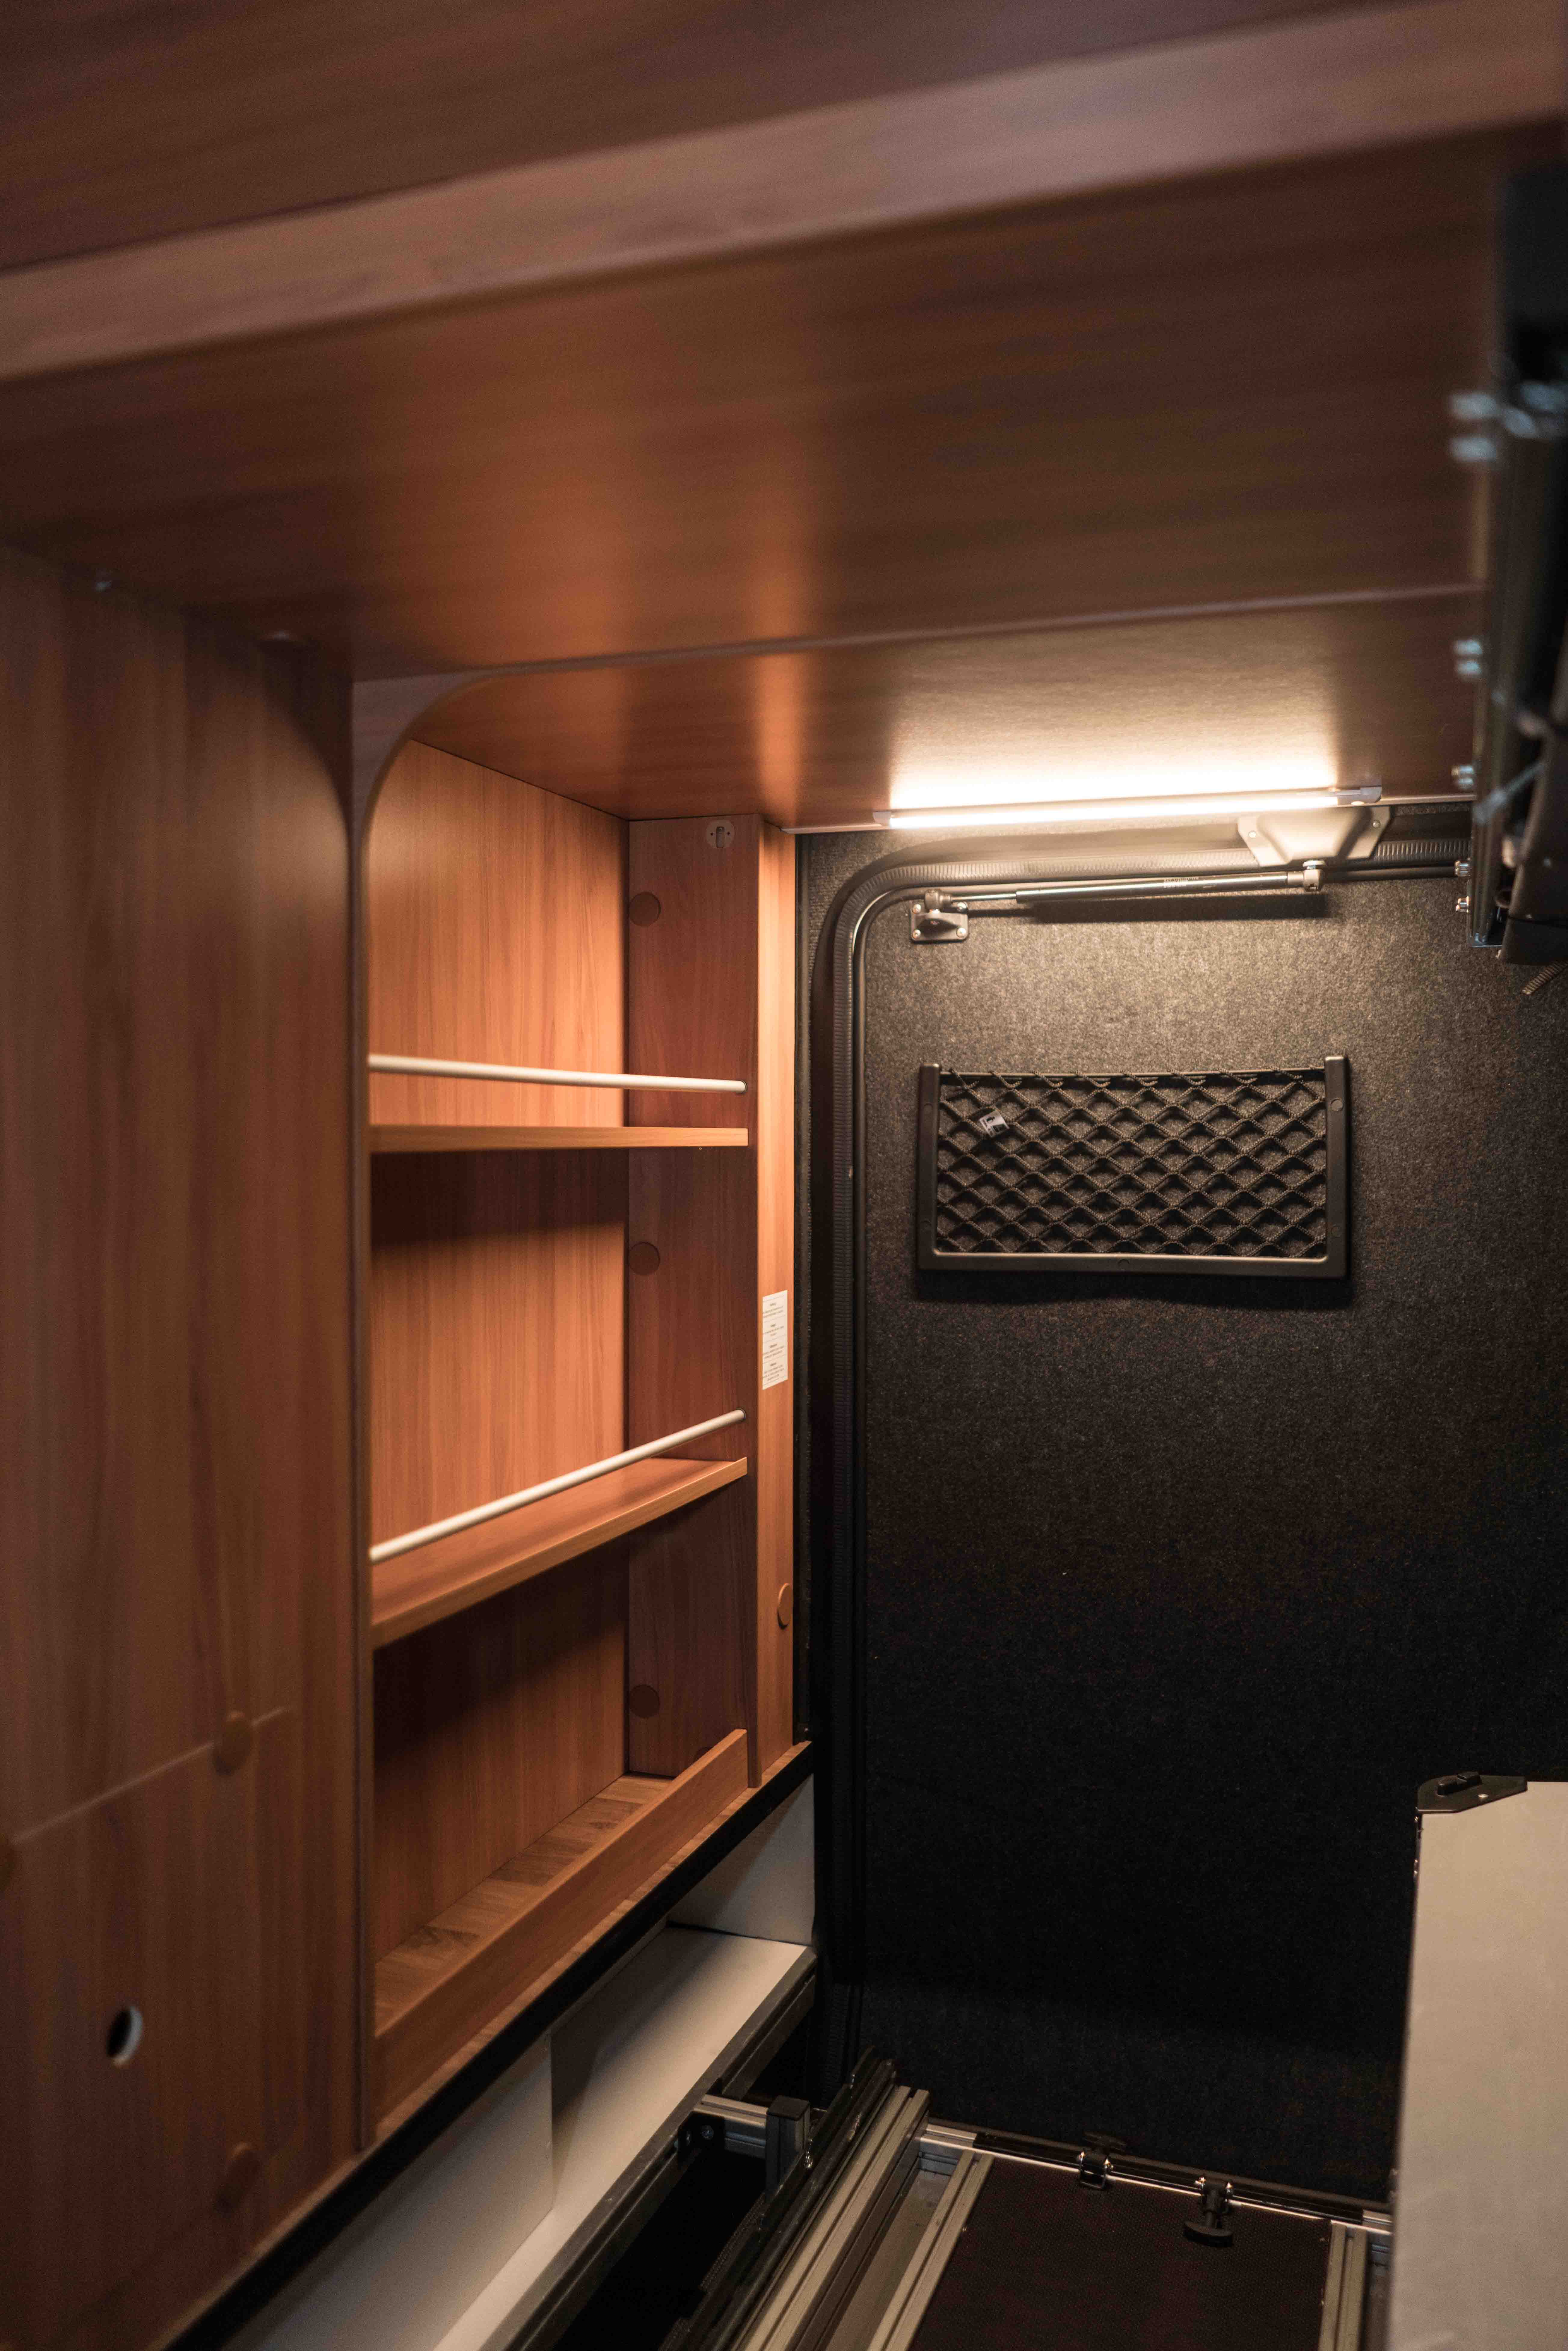 zusatzleuchte led in heckgarage sonstiges innen raum hymer gmbh und co kg. Black Bedroom Furniture Sets. Home Design Ideas